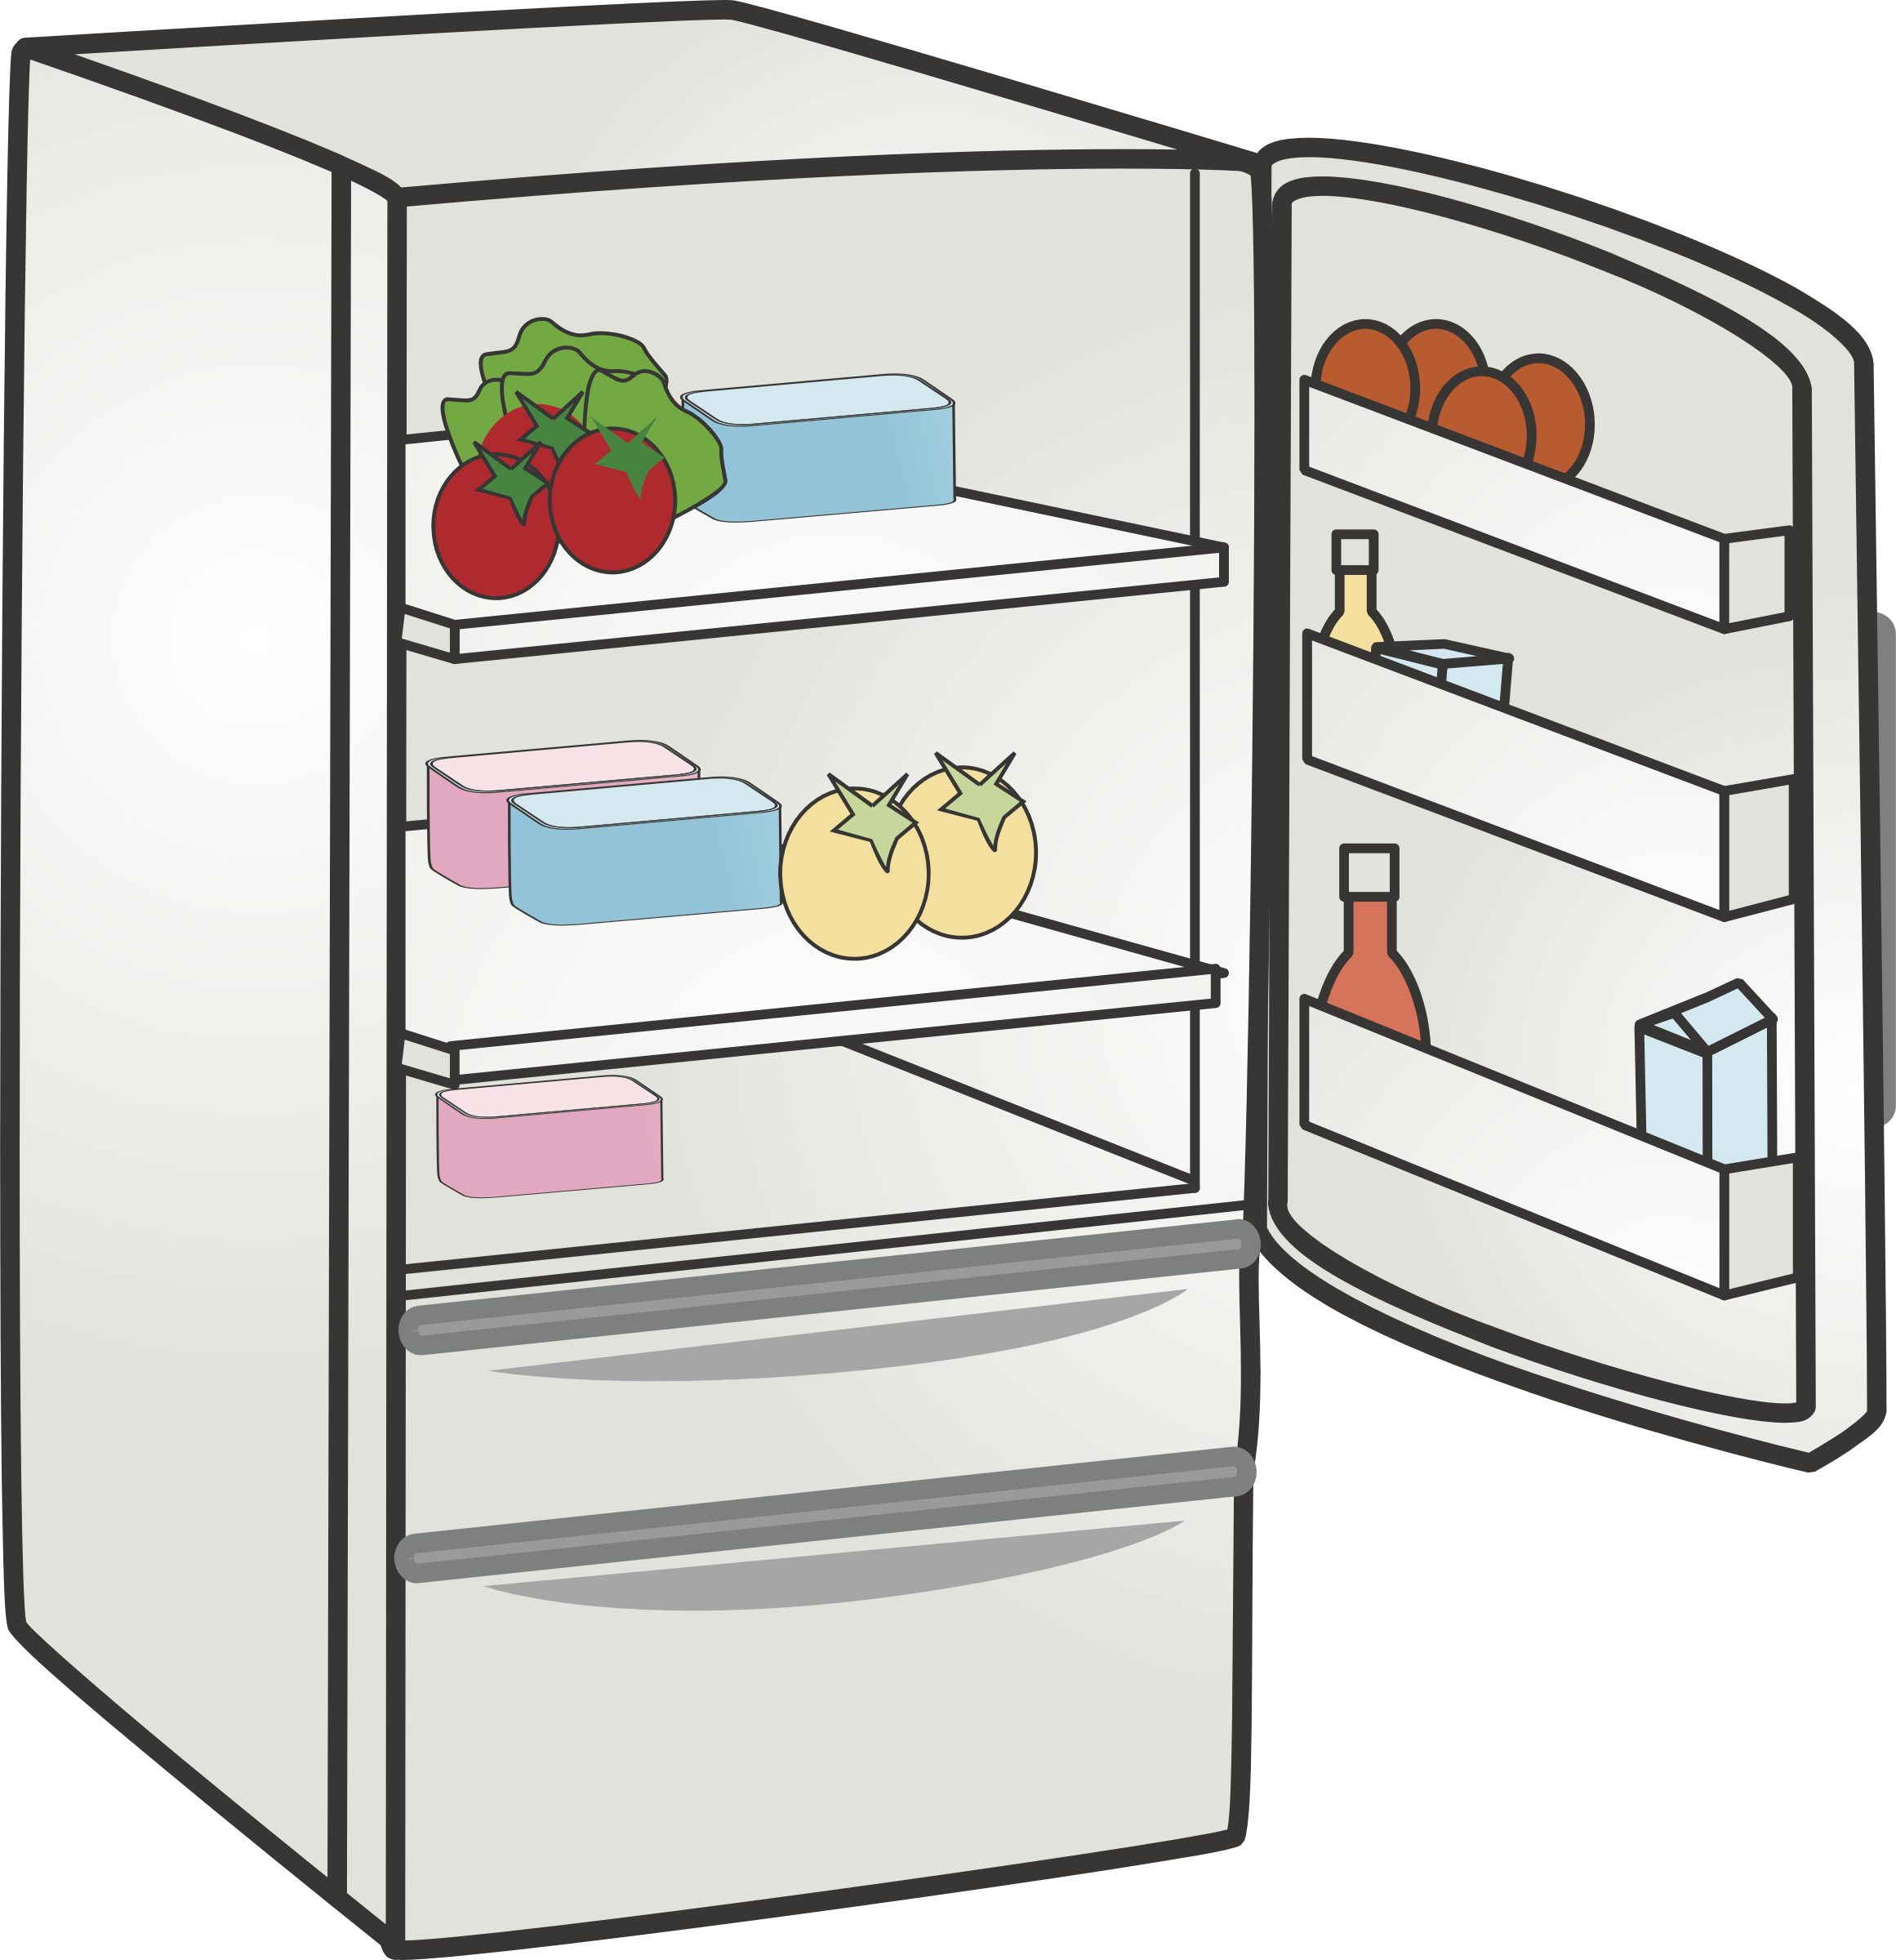 clip black and white download Fridge clipart. Refrigerator big image png